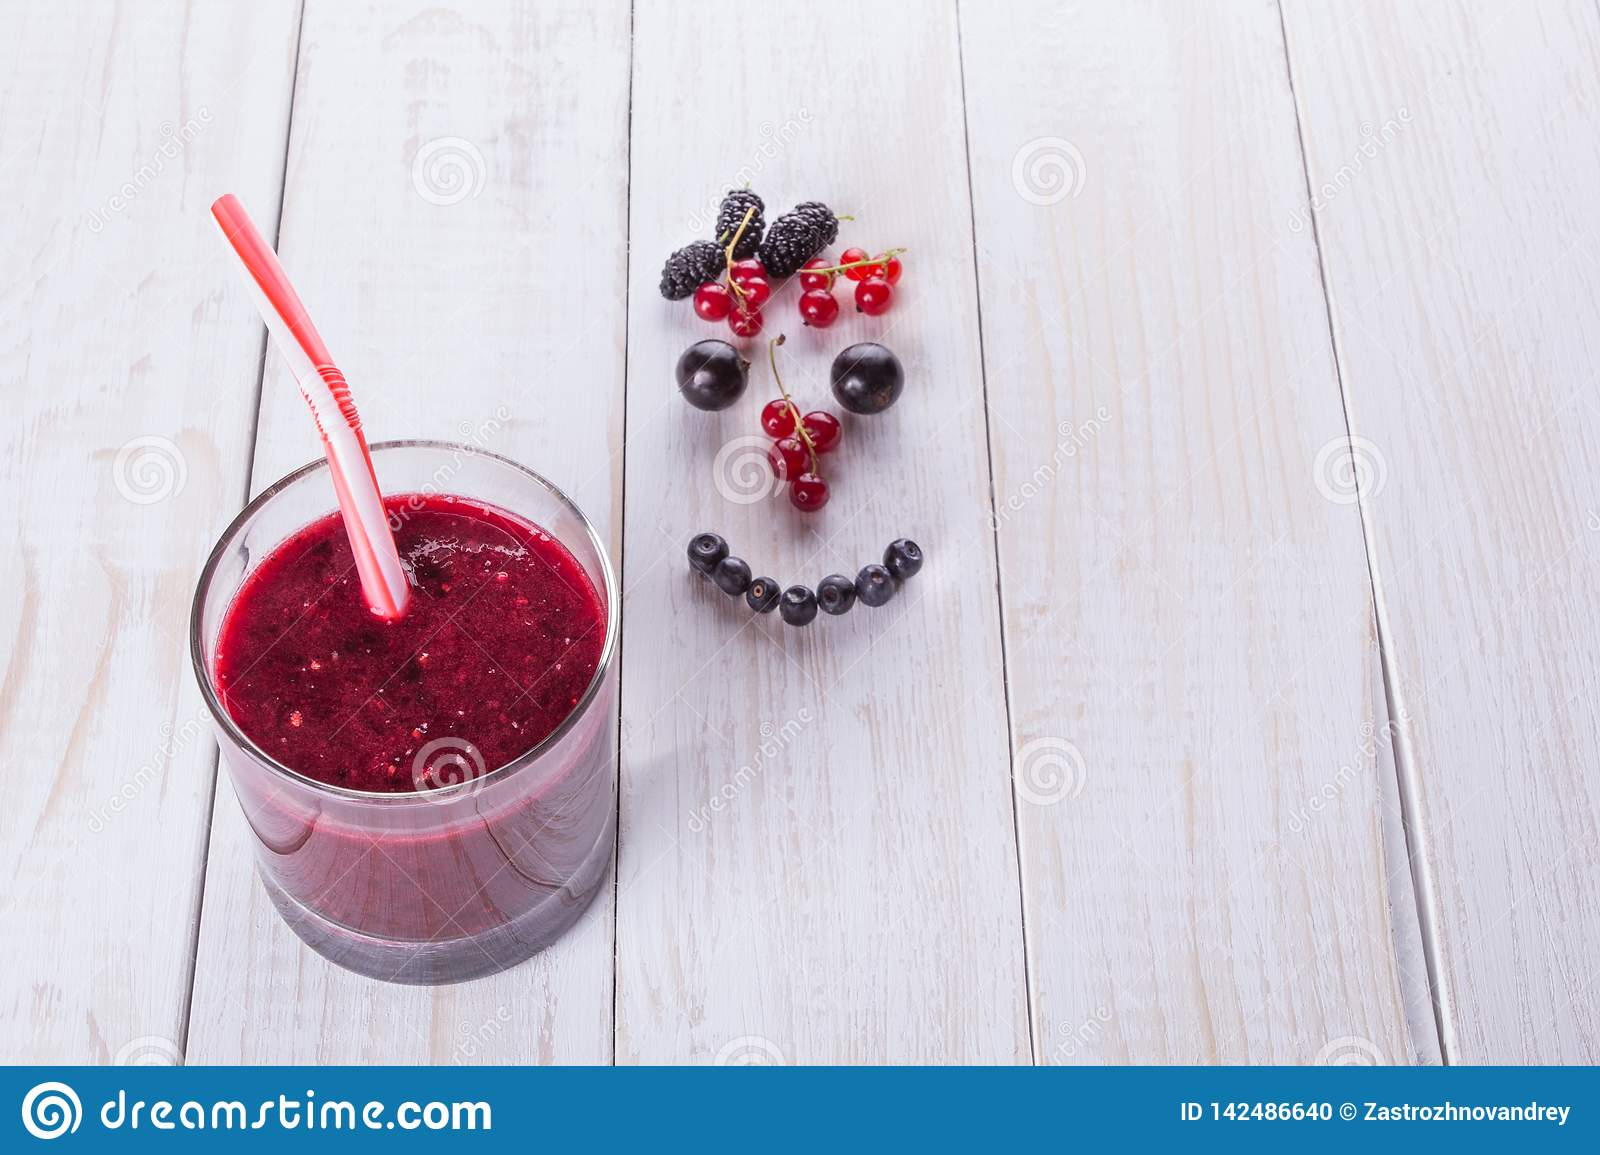 Berry smoothie in a glass jar with a straw, over vintage wood table with fresh mulberry berries, blackberries and currants. Smile